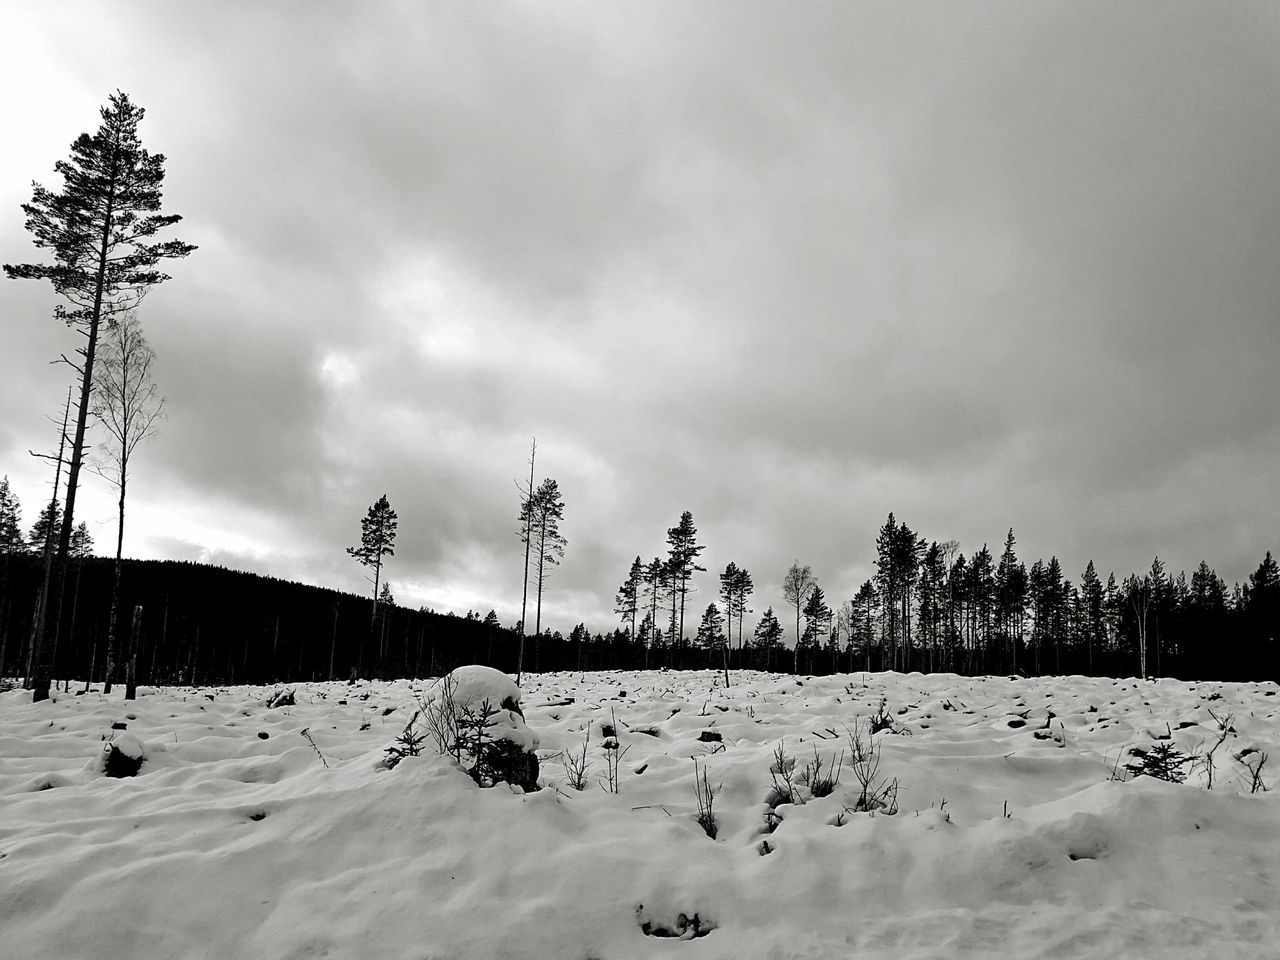 Landscape Landscape Landscape_Collection Landscape_photography Landscapes Winter Snow Growth Monochrome Black And White Cold Temperature Beauty In Nature Scenics Nature WoodLand Blackandwhite Dalarna The Great Outdoors - 2017 EyeEm Awards